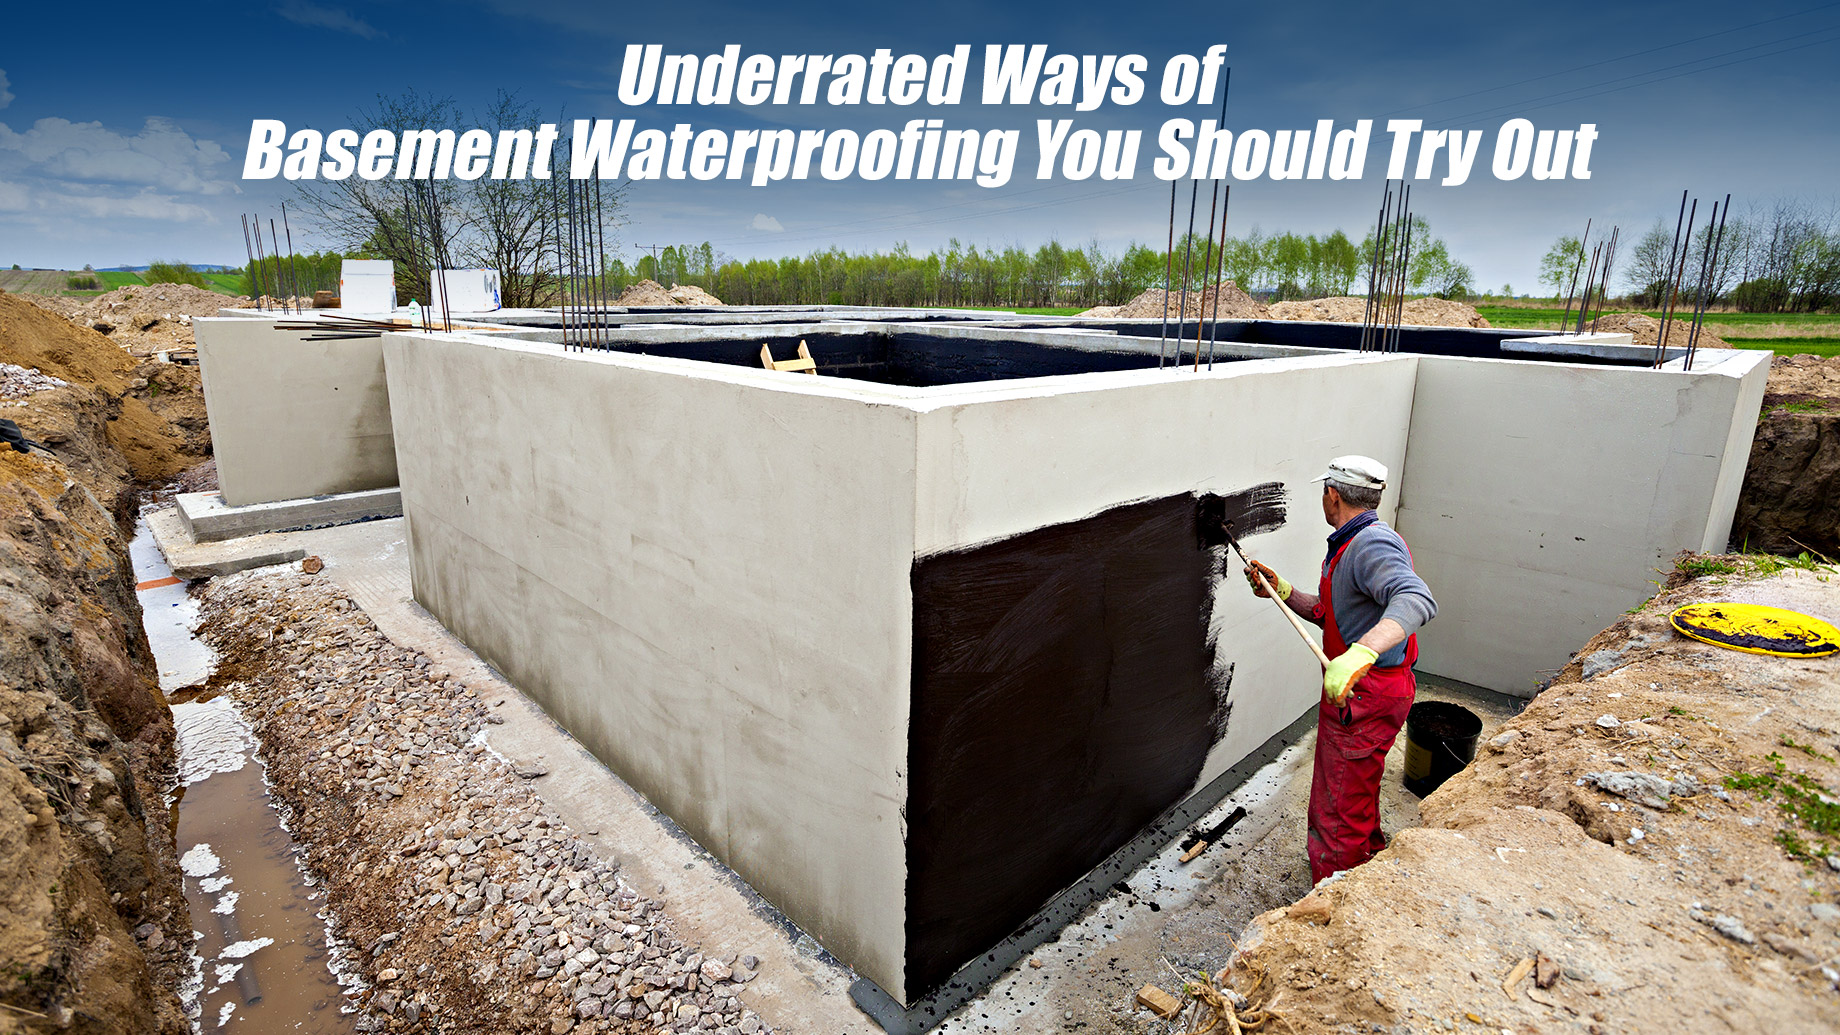 Underrated Ways of Basement Waterproofing You Should Try Out